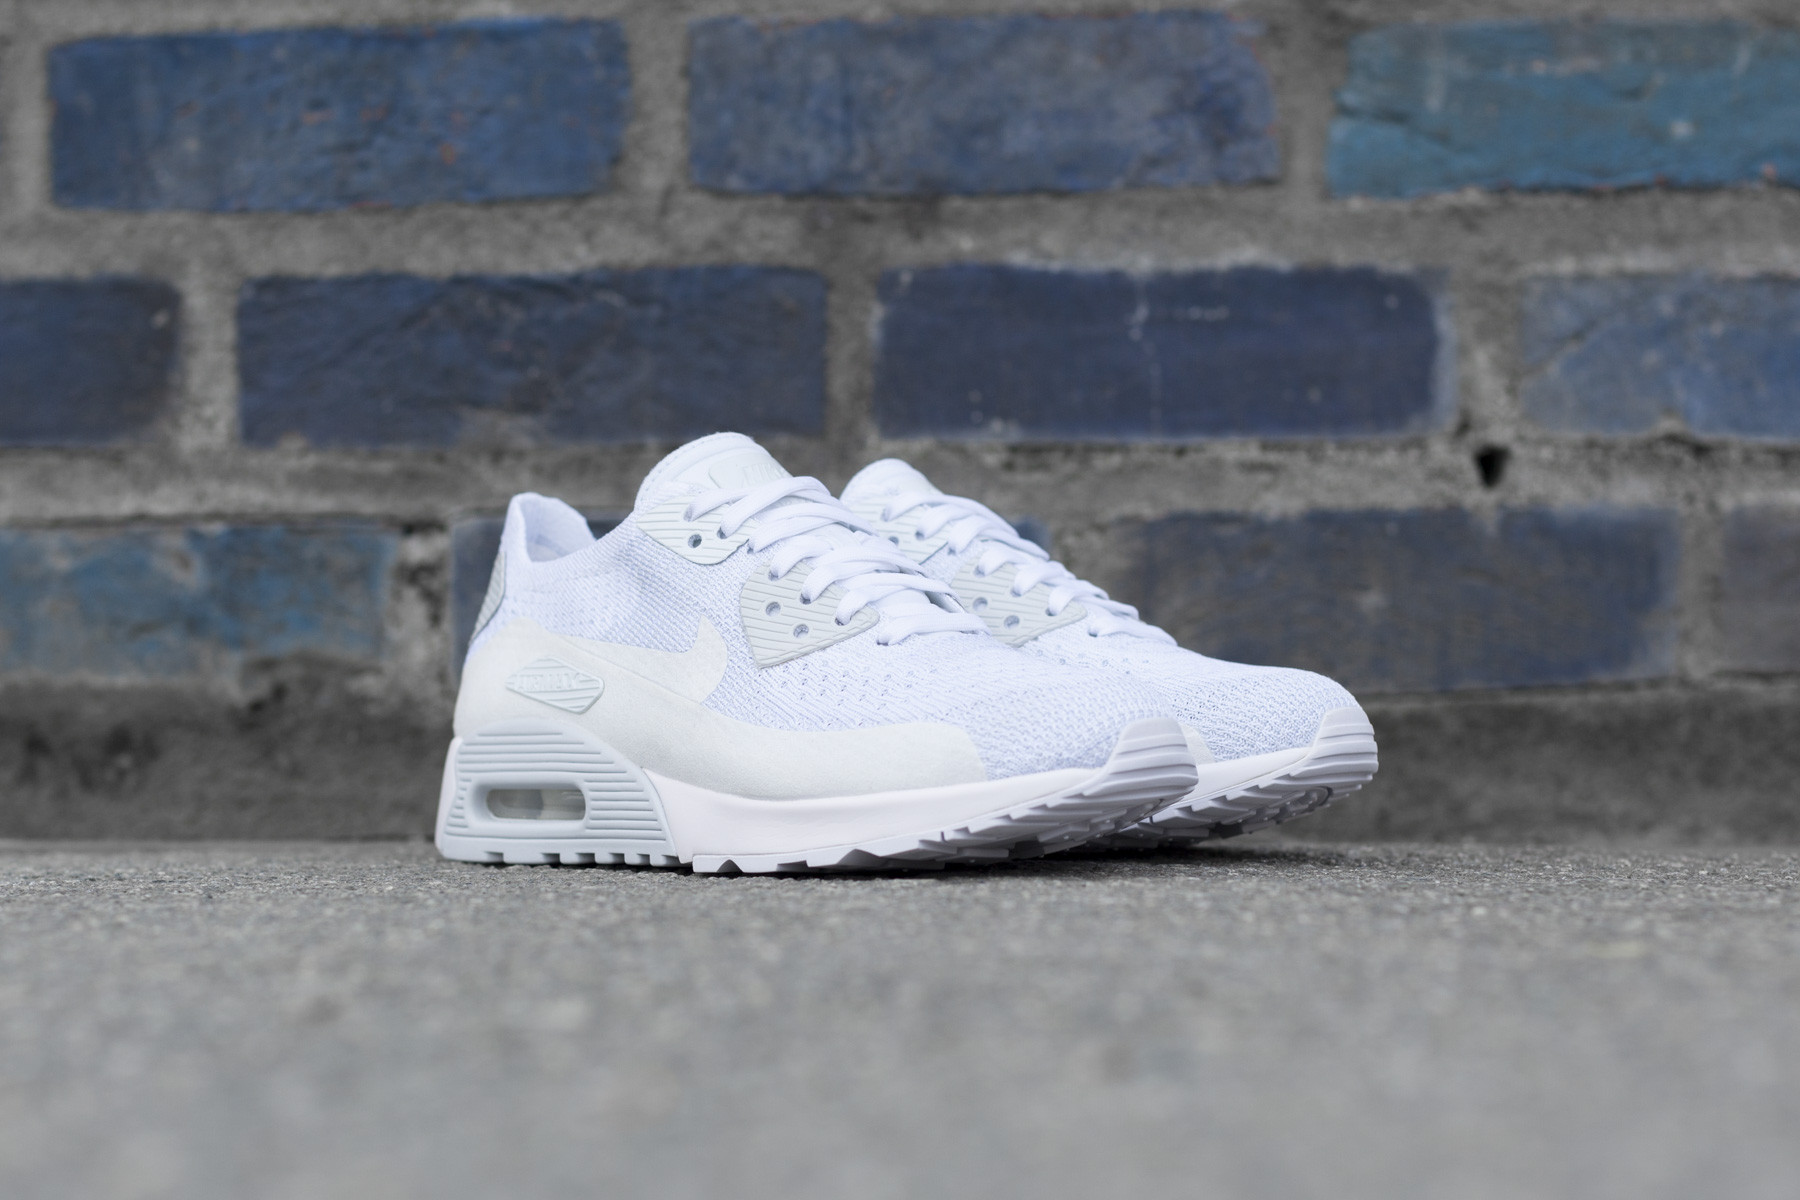 big sale 4a8f0 992f2 Wmns Nike Air Max 90 Ultra 2.0 Flyknit - Dame - Sneakers - Sneaker.no